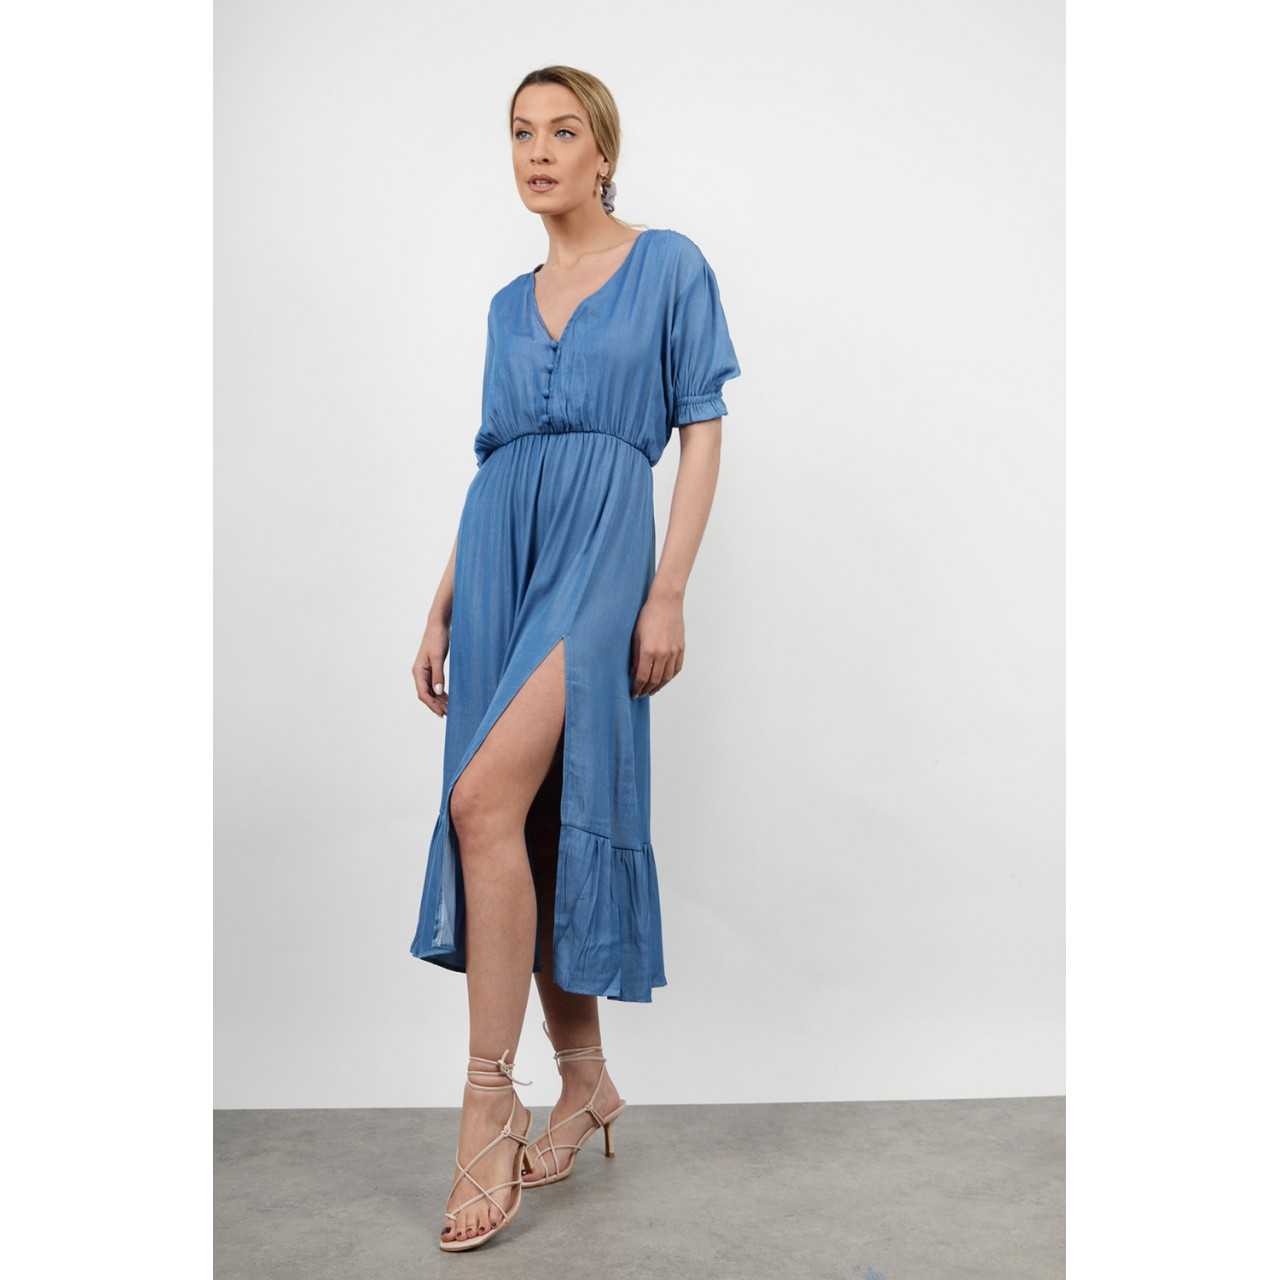 Midi jean dress with opening